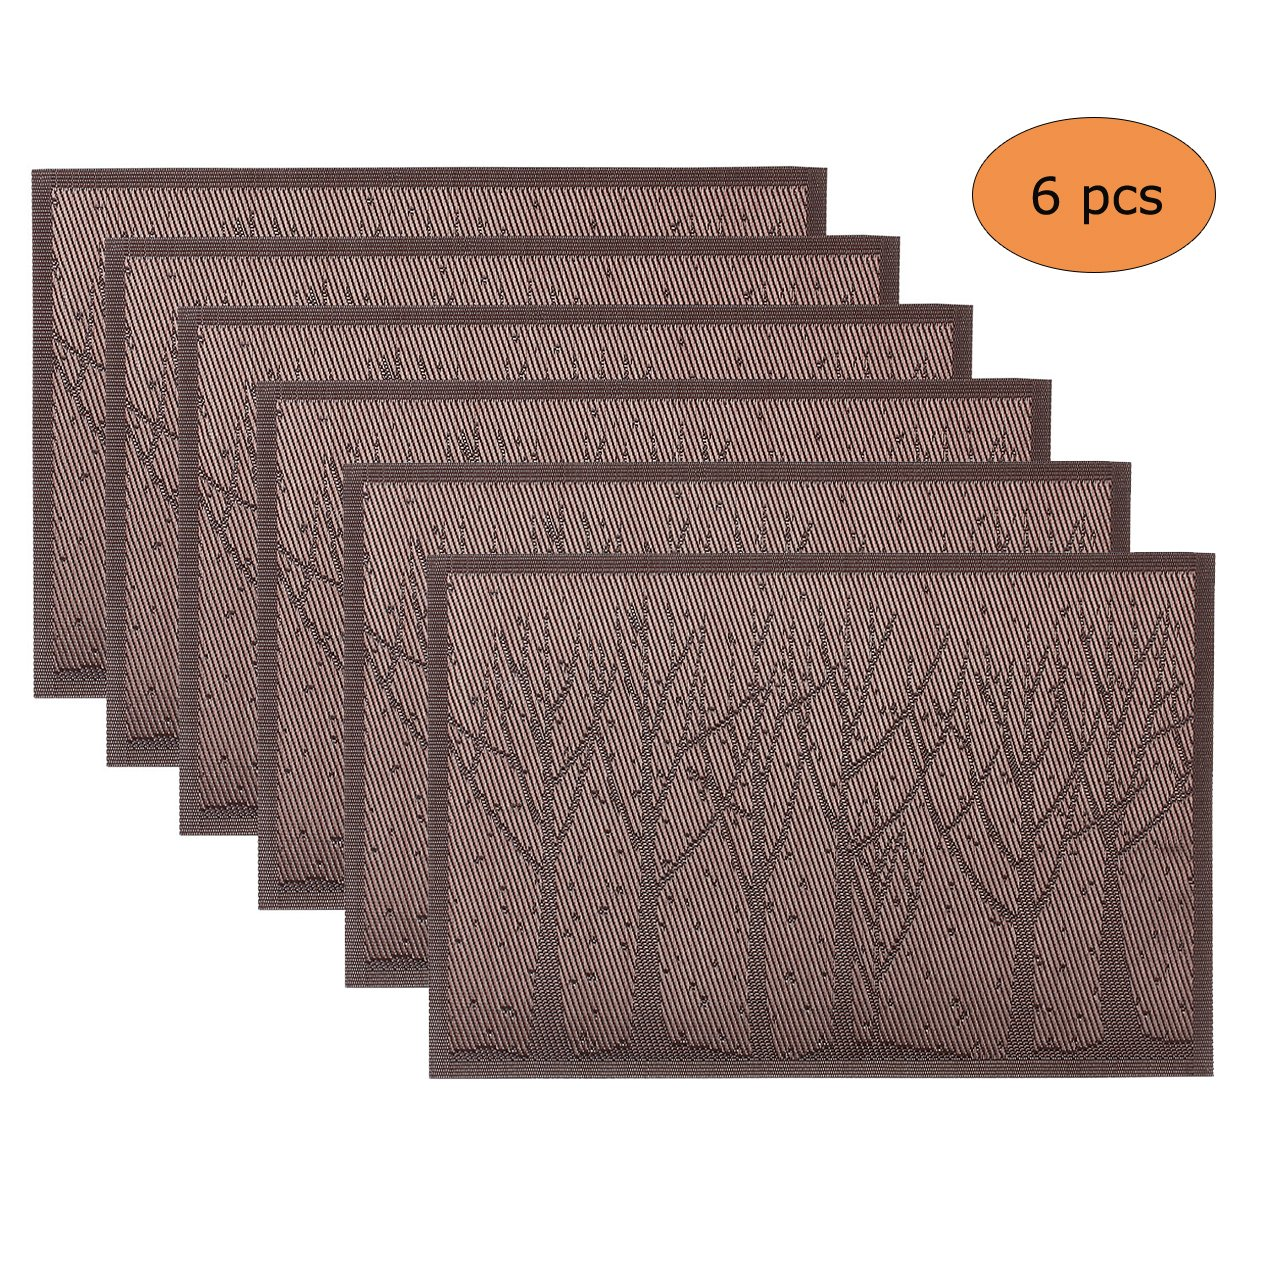 WarmHut Placemats, Fall Tree Woven Vinyl PVC Place Mats for Dining Table Heat Insulation Stain Resistant Table Mat Protector Anti-skidding, Set of 6 Pcs